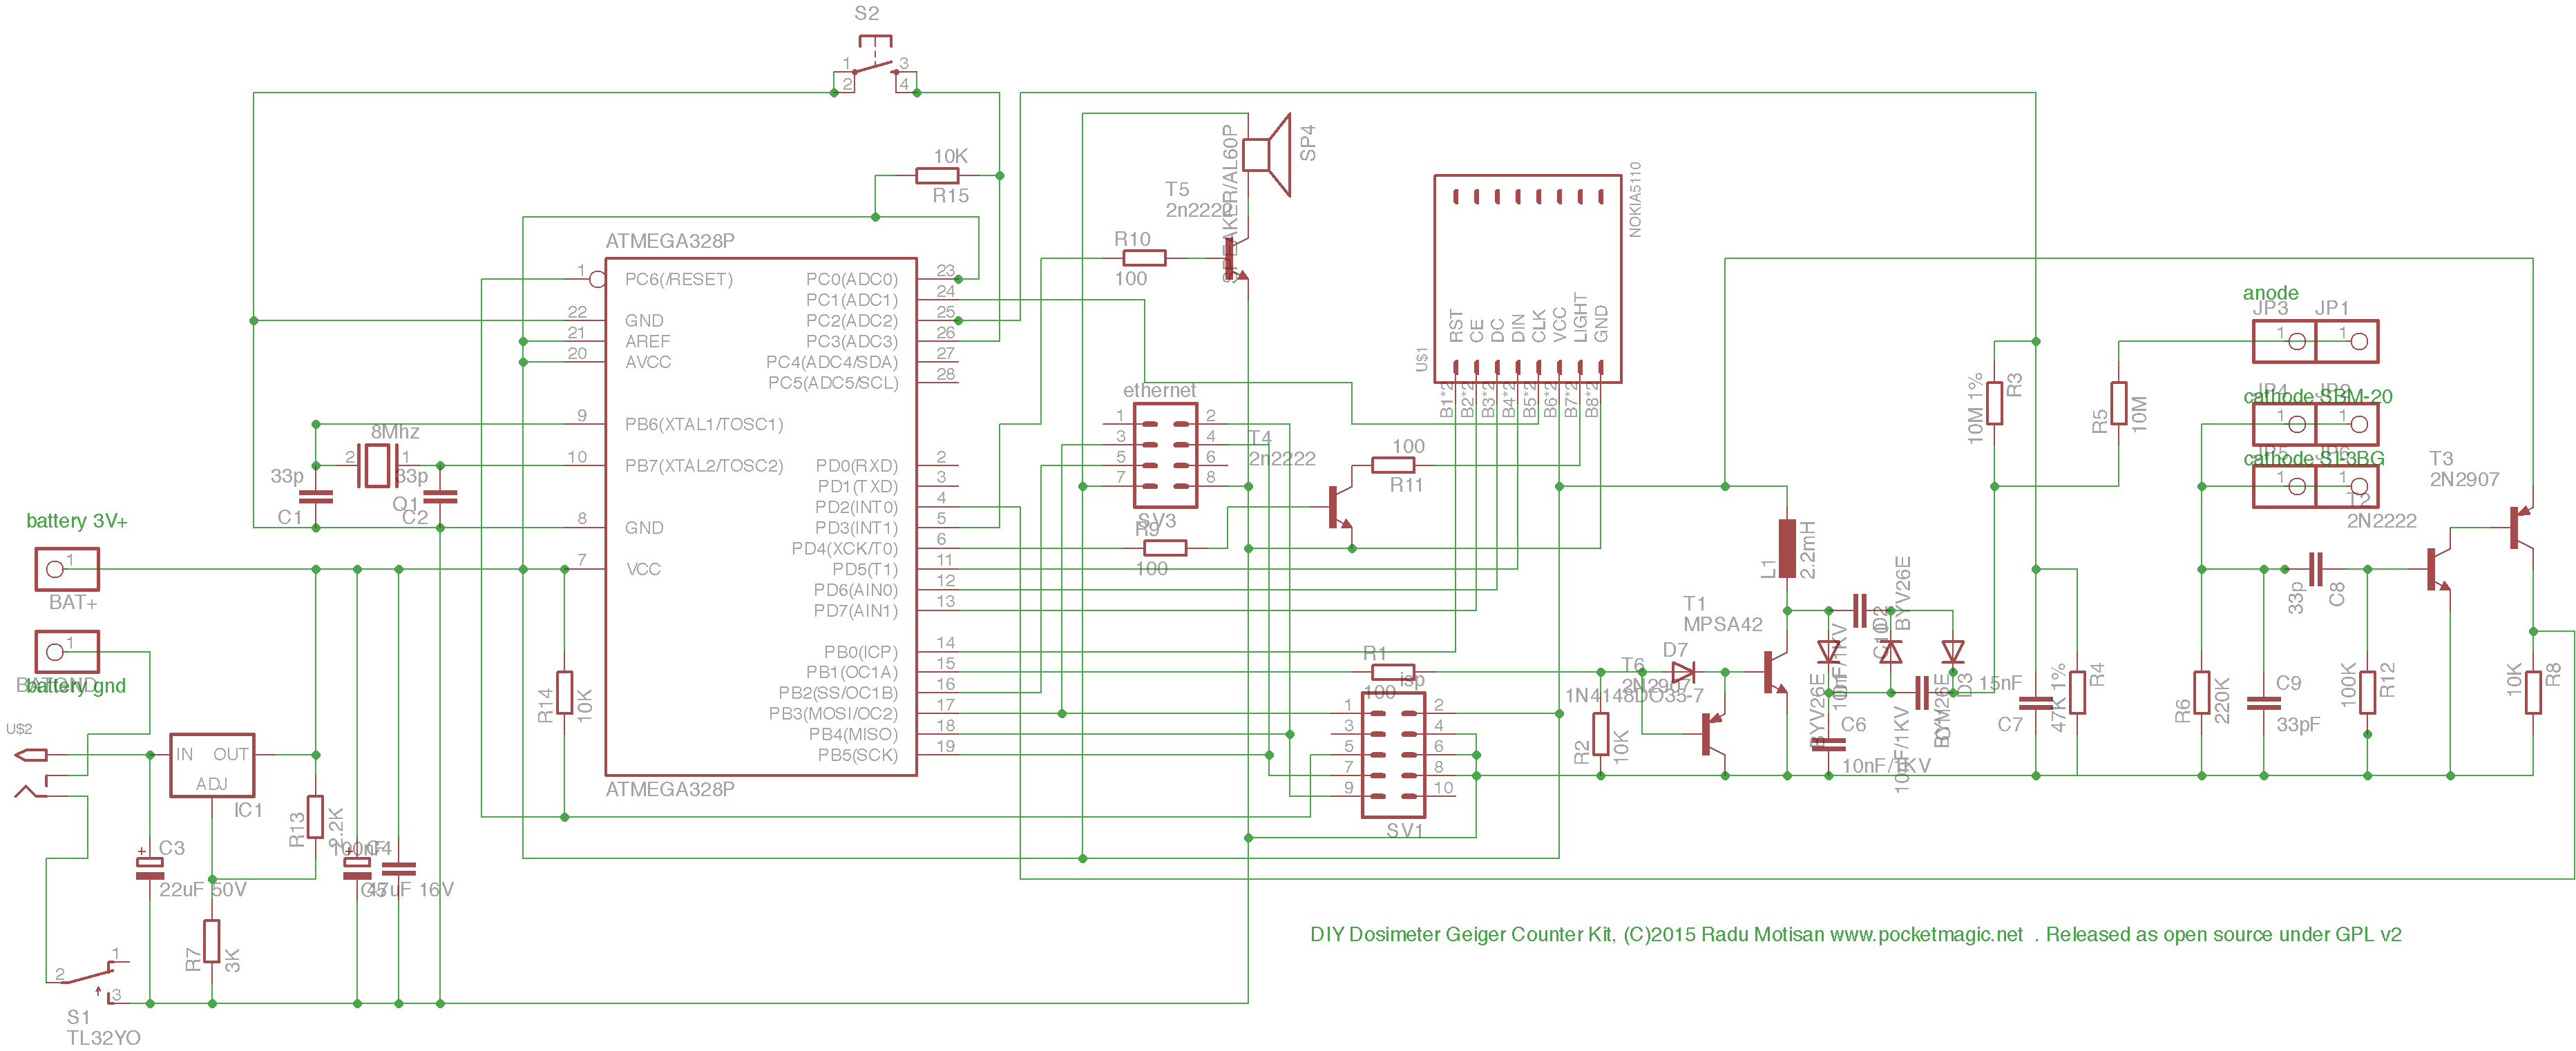 kit1 schematic